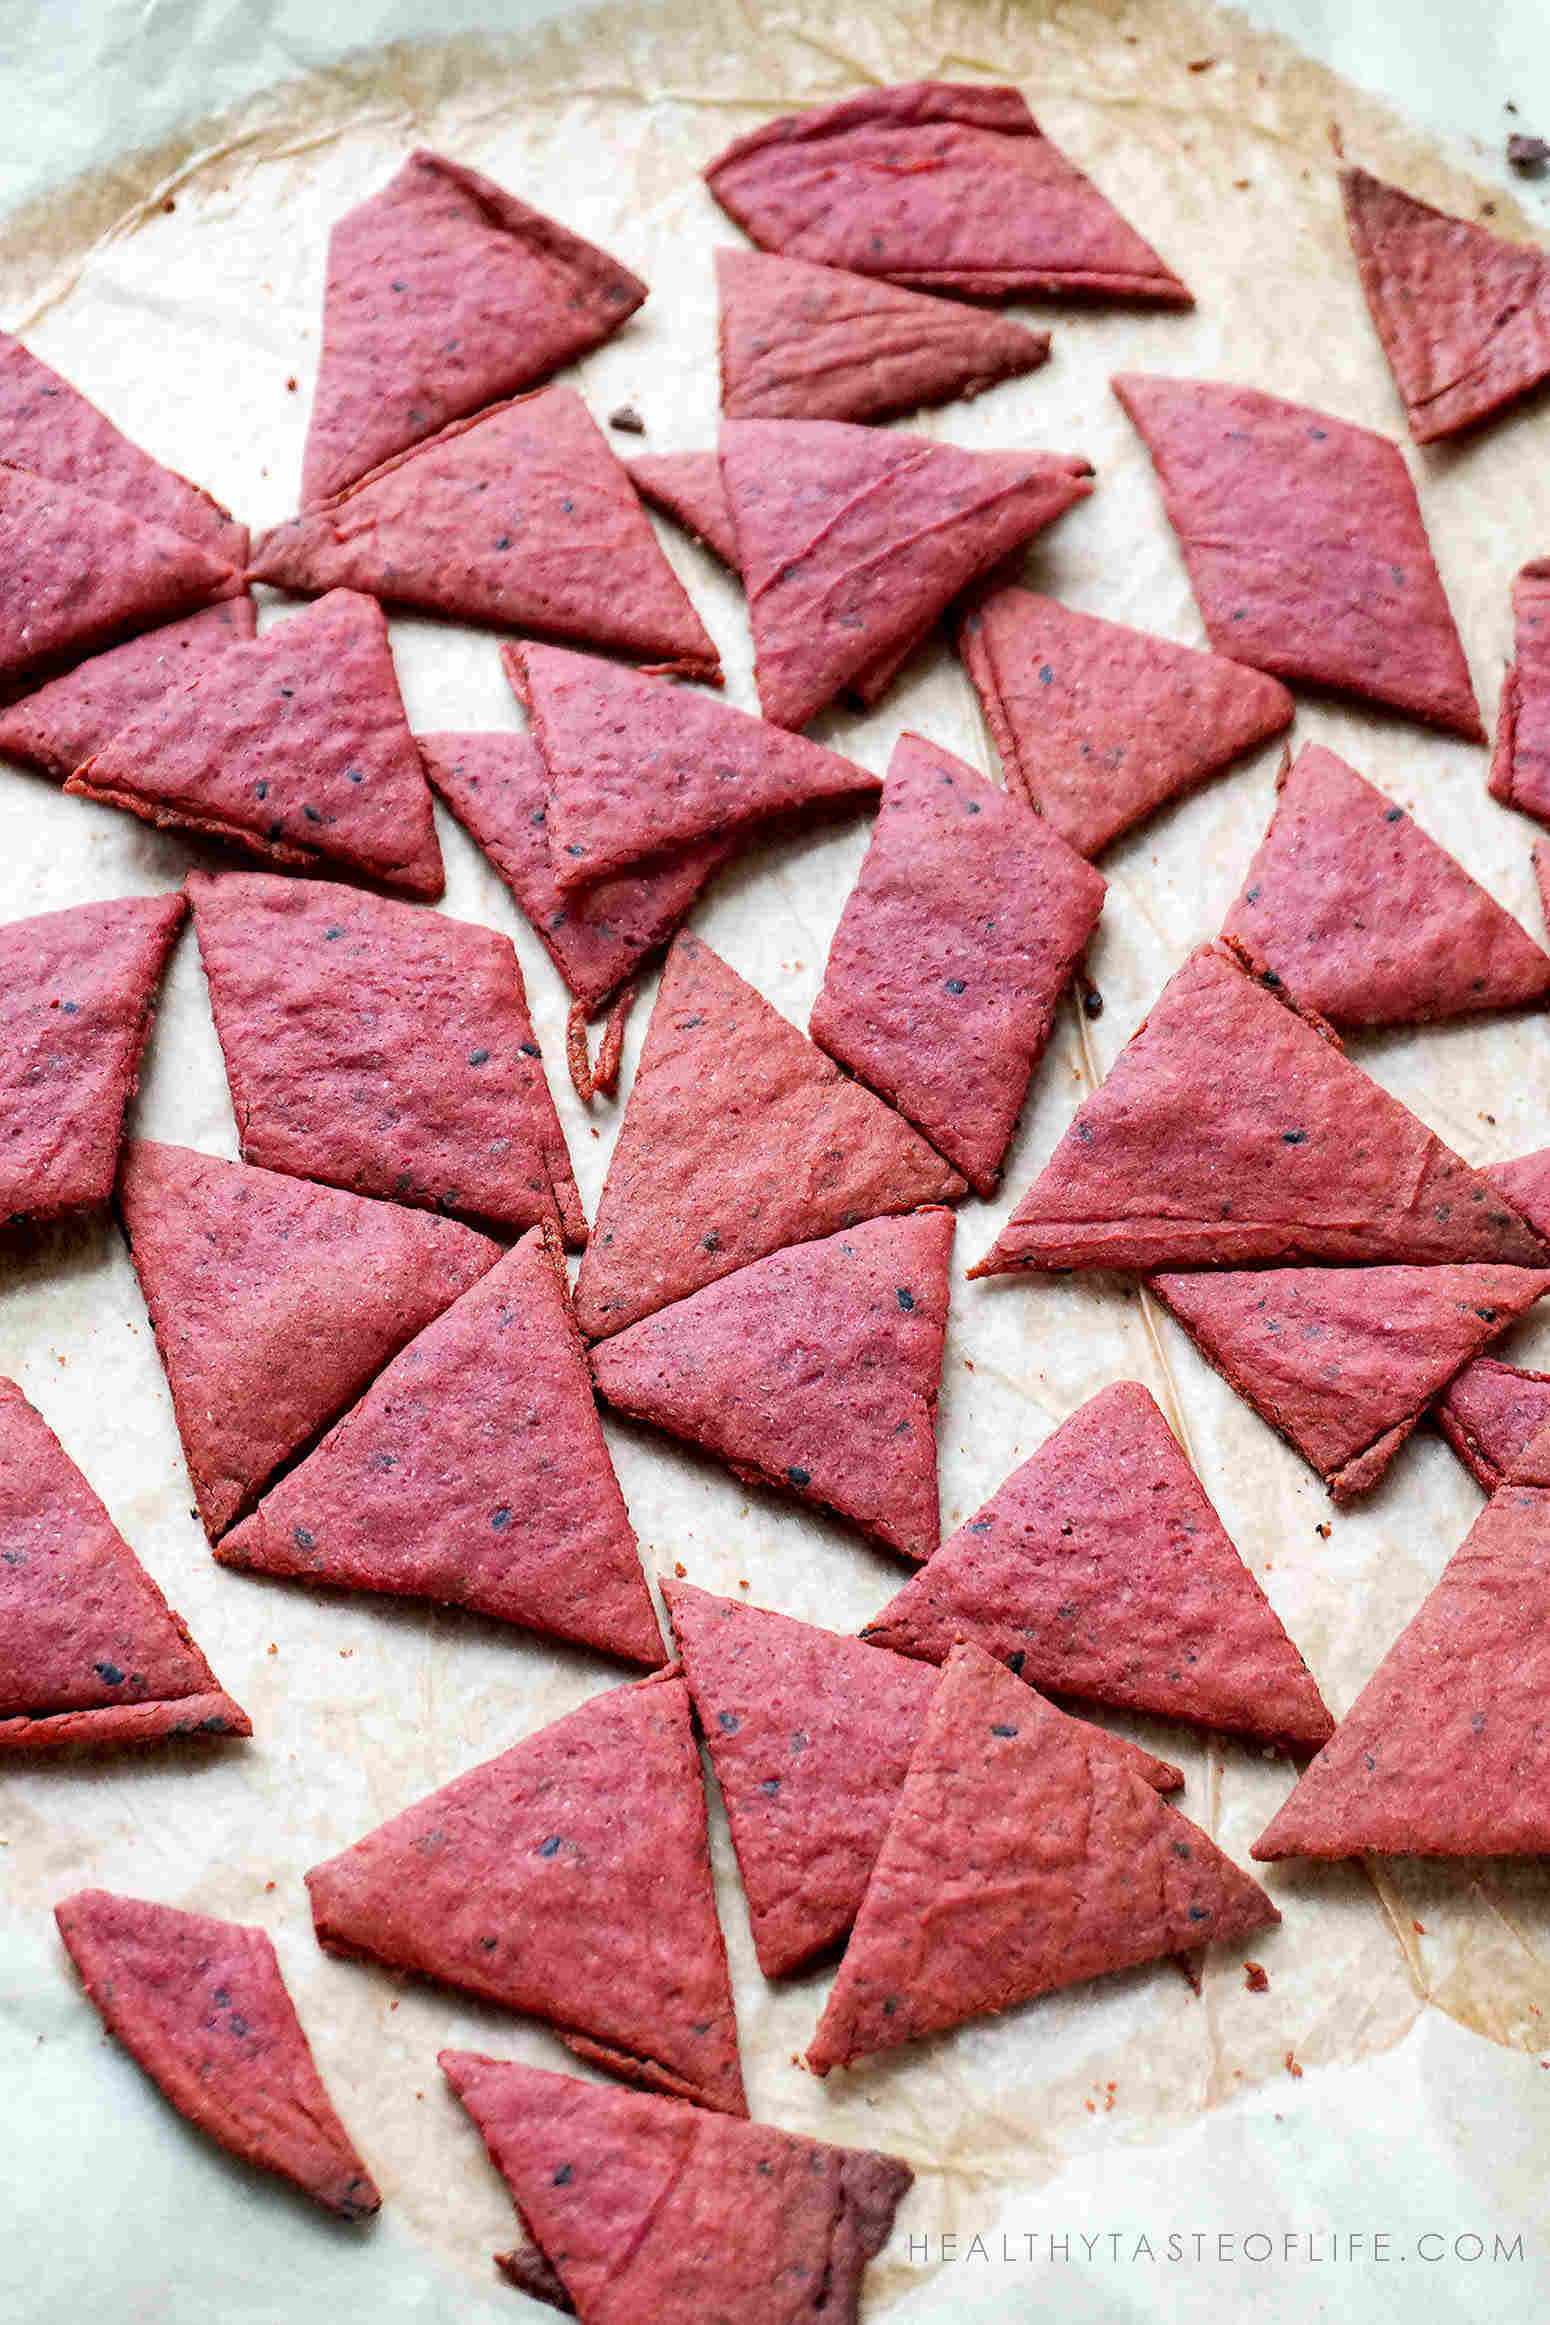 beet crackers cut into triangular pieces